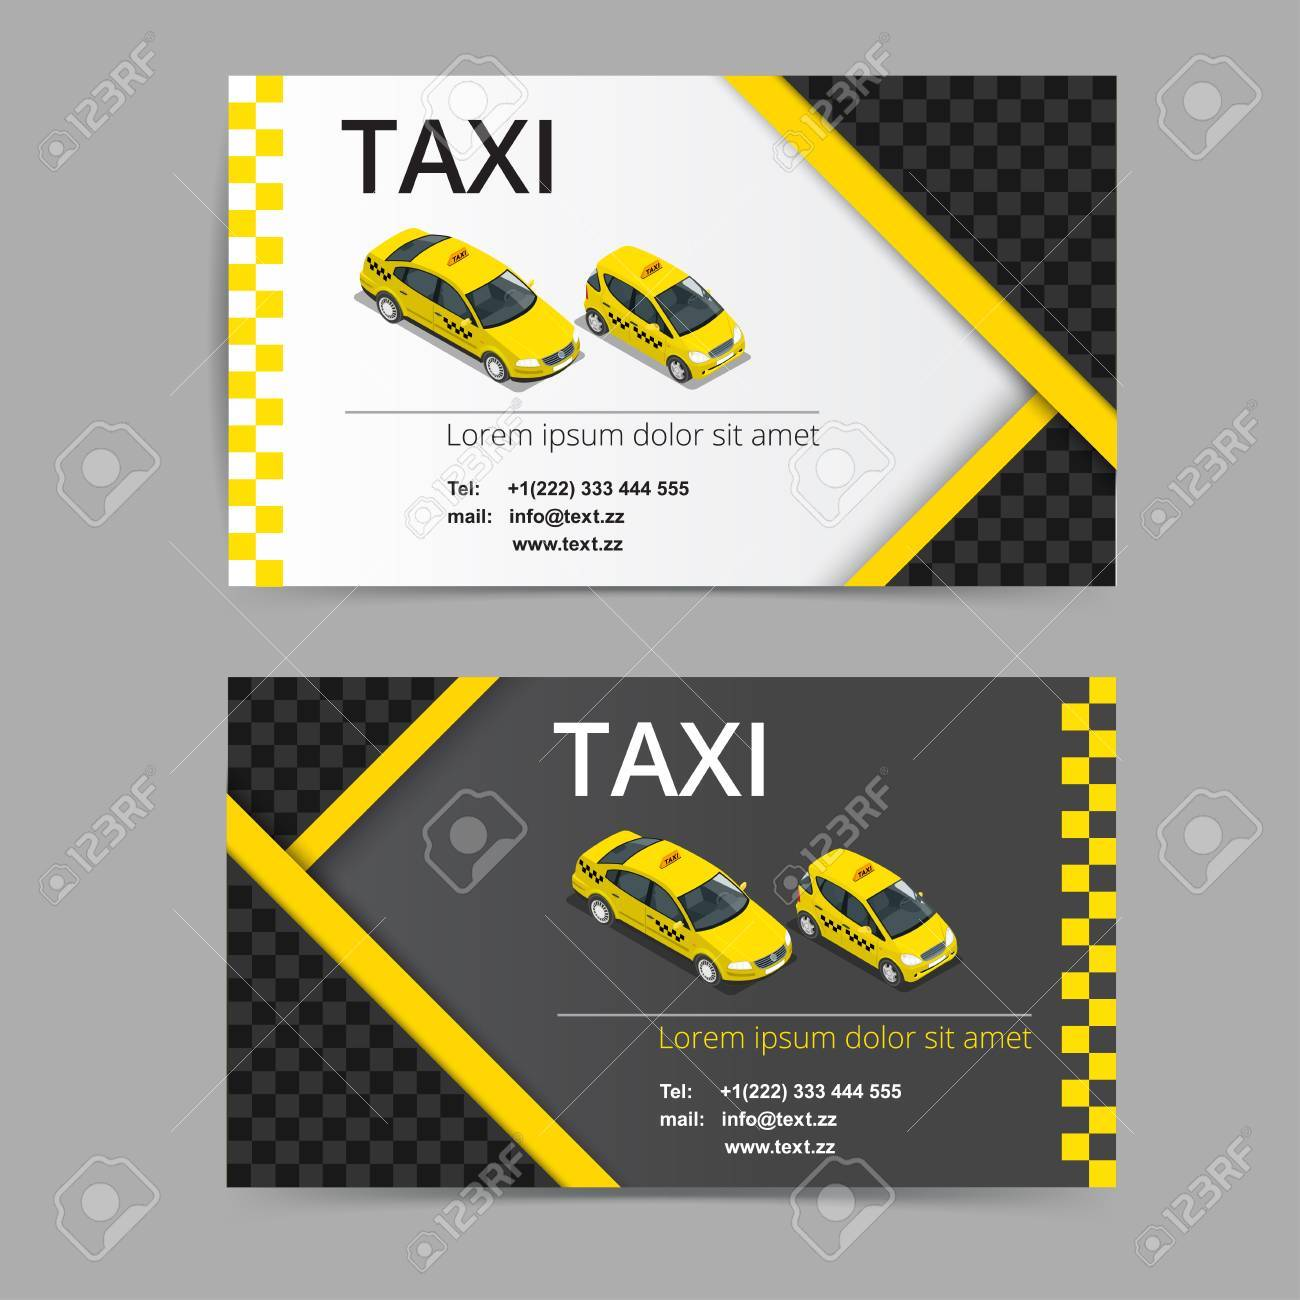 Business Card Design In Black White And Yellow Colors Vector Template For Taxi Company